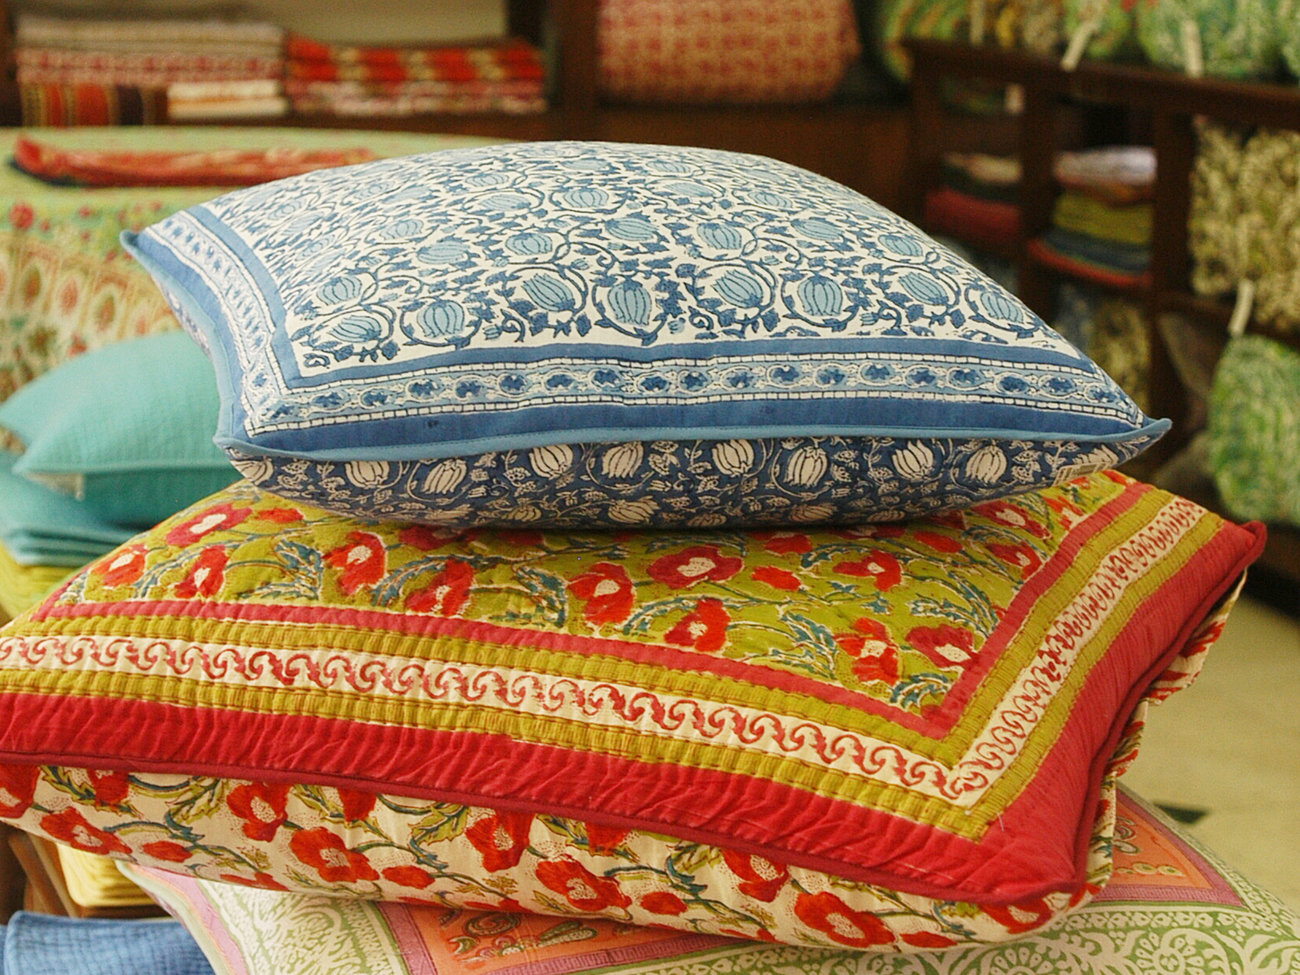 Anokhi Shop in Delhi